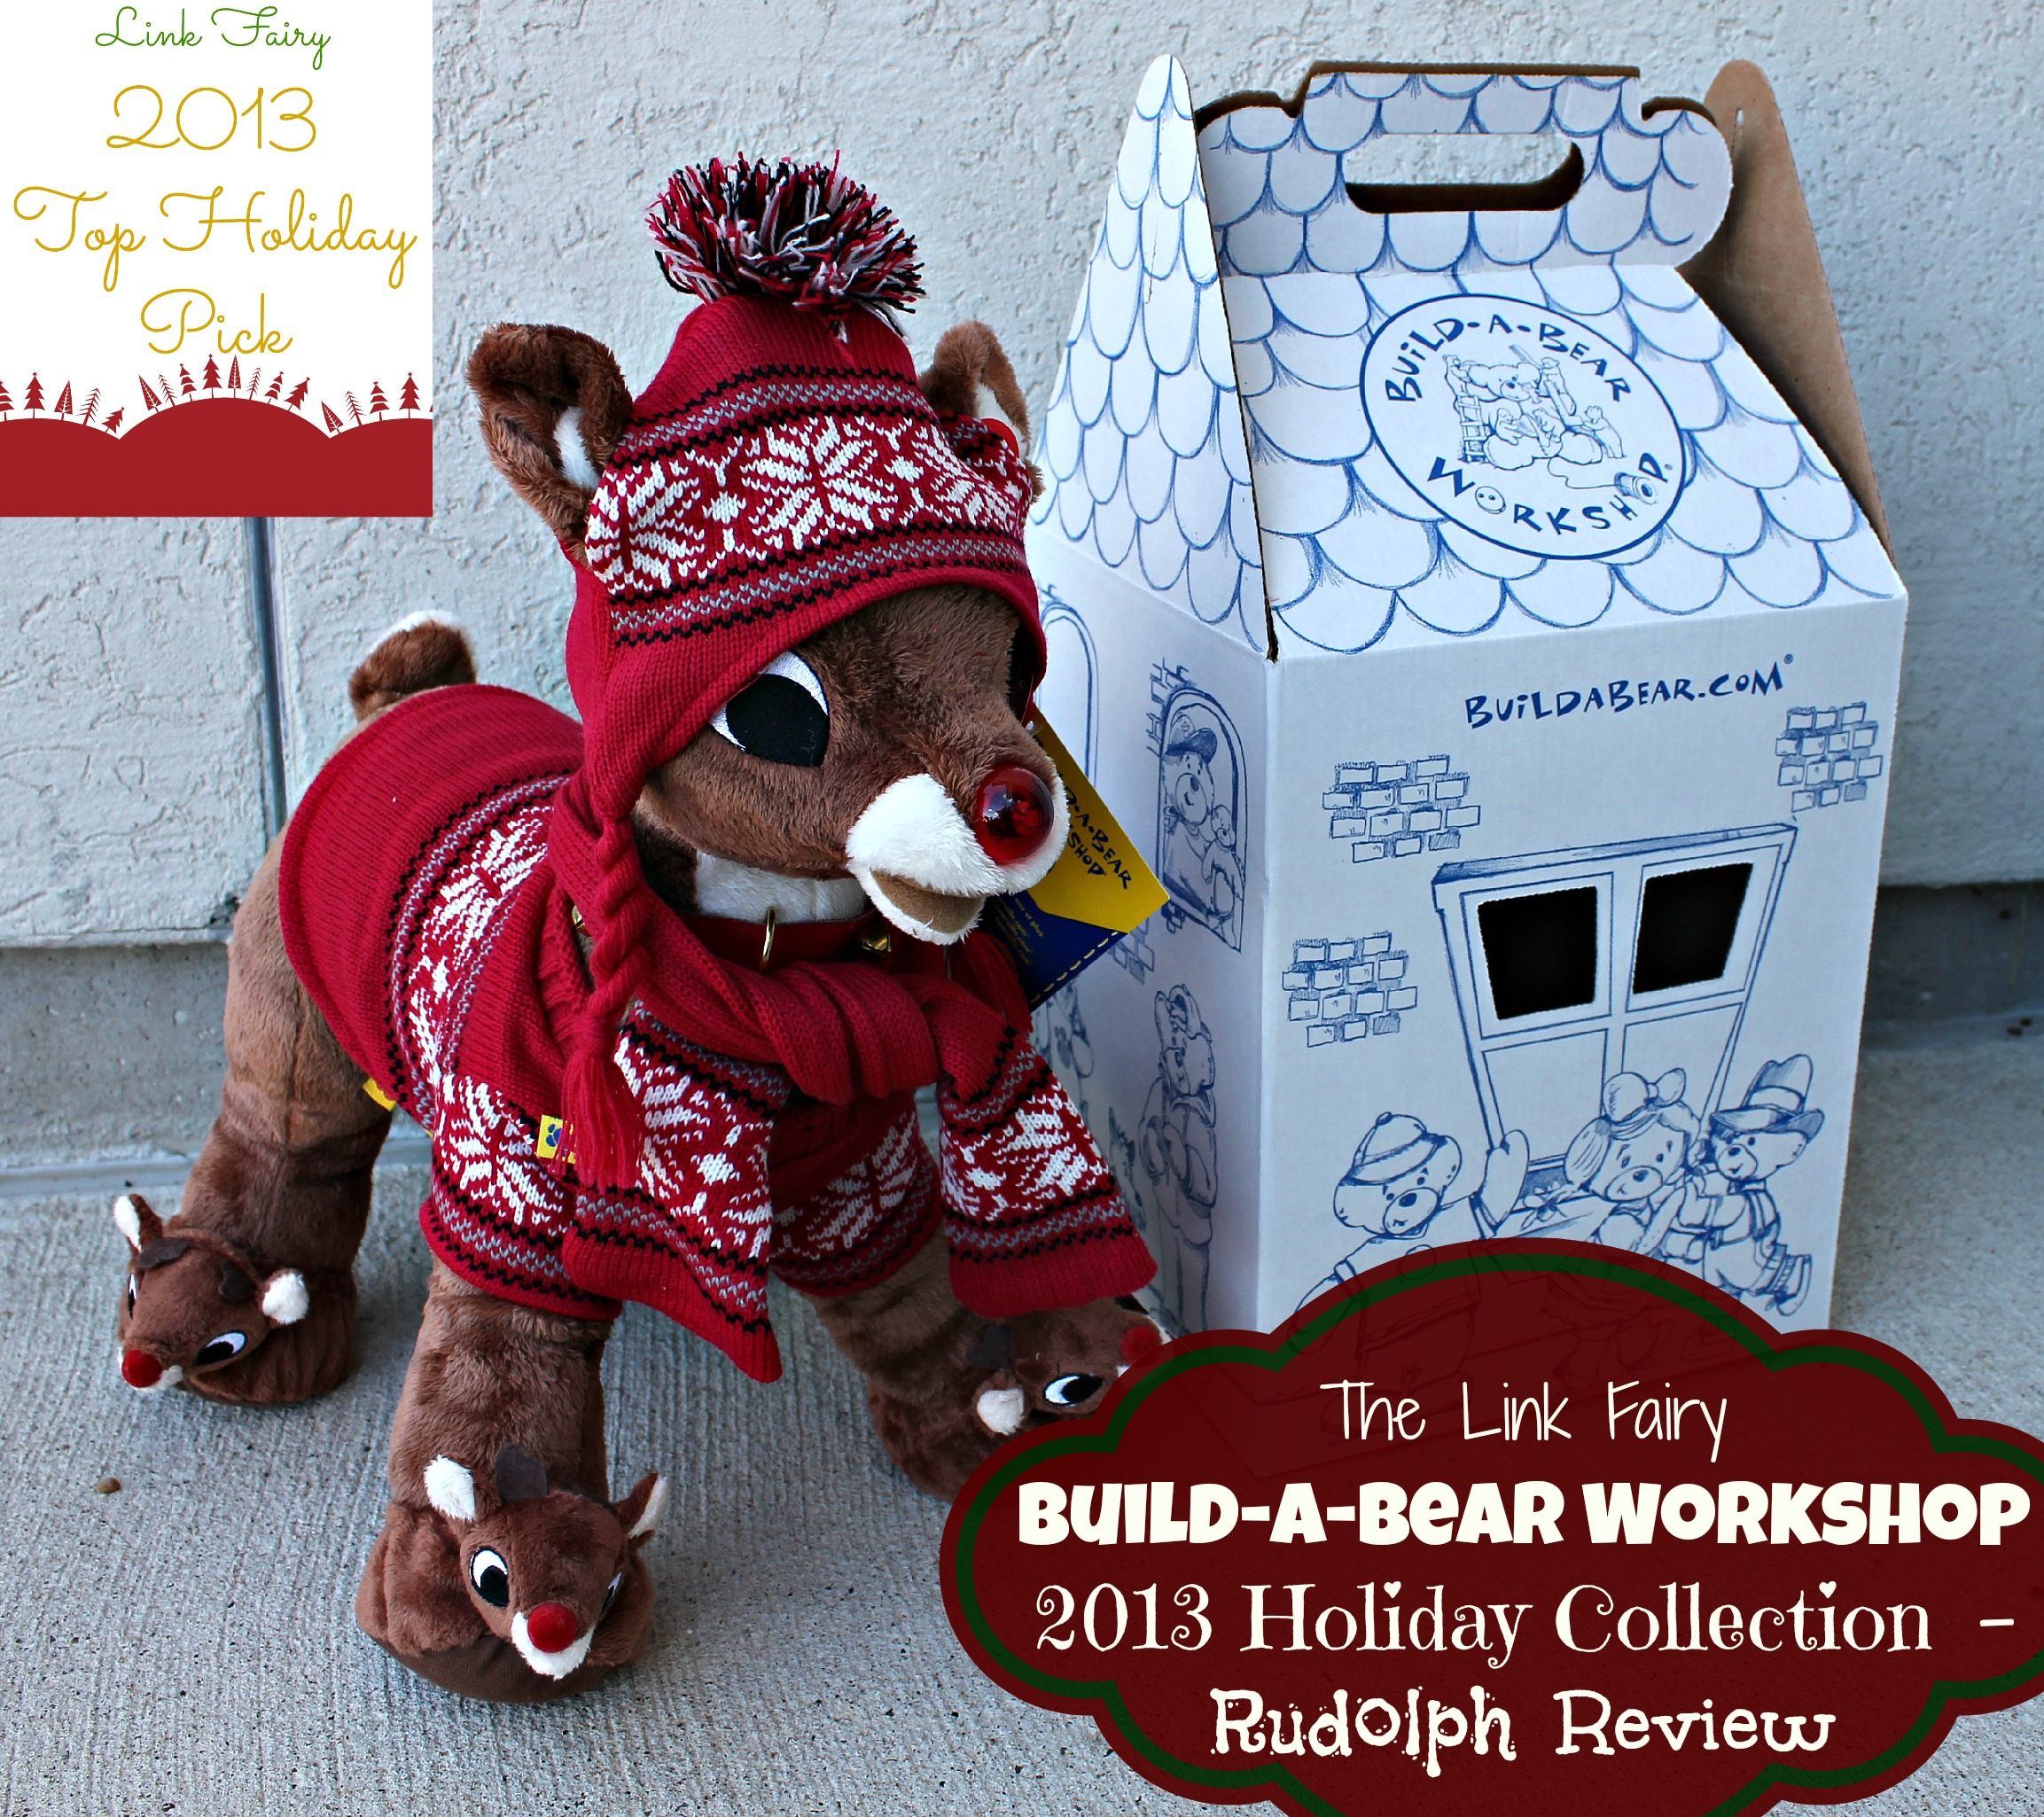 Build-A-Bear Workshop 2013 Christmas Classics, Rudolph Review